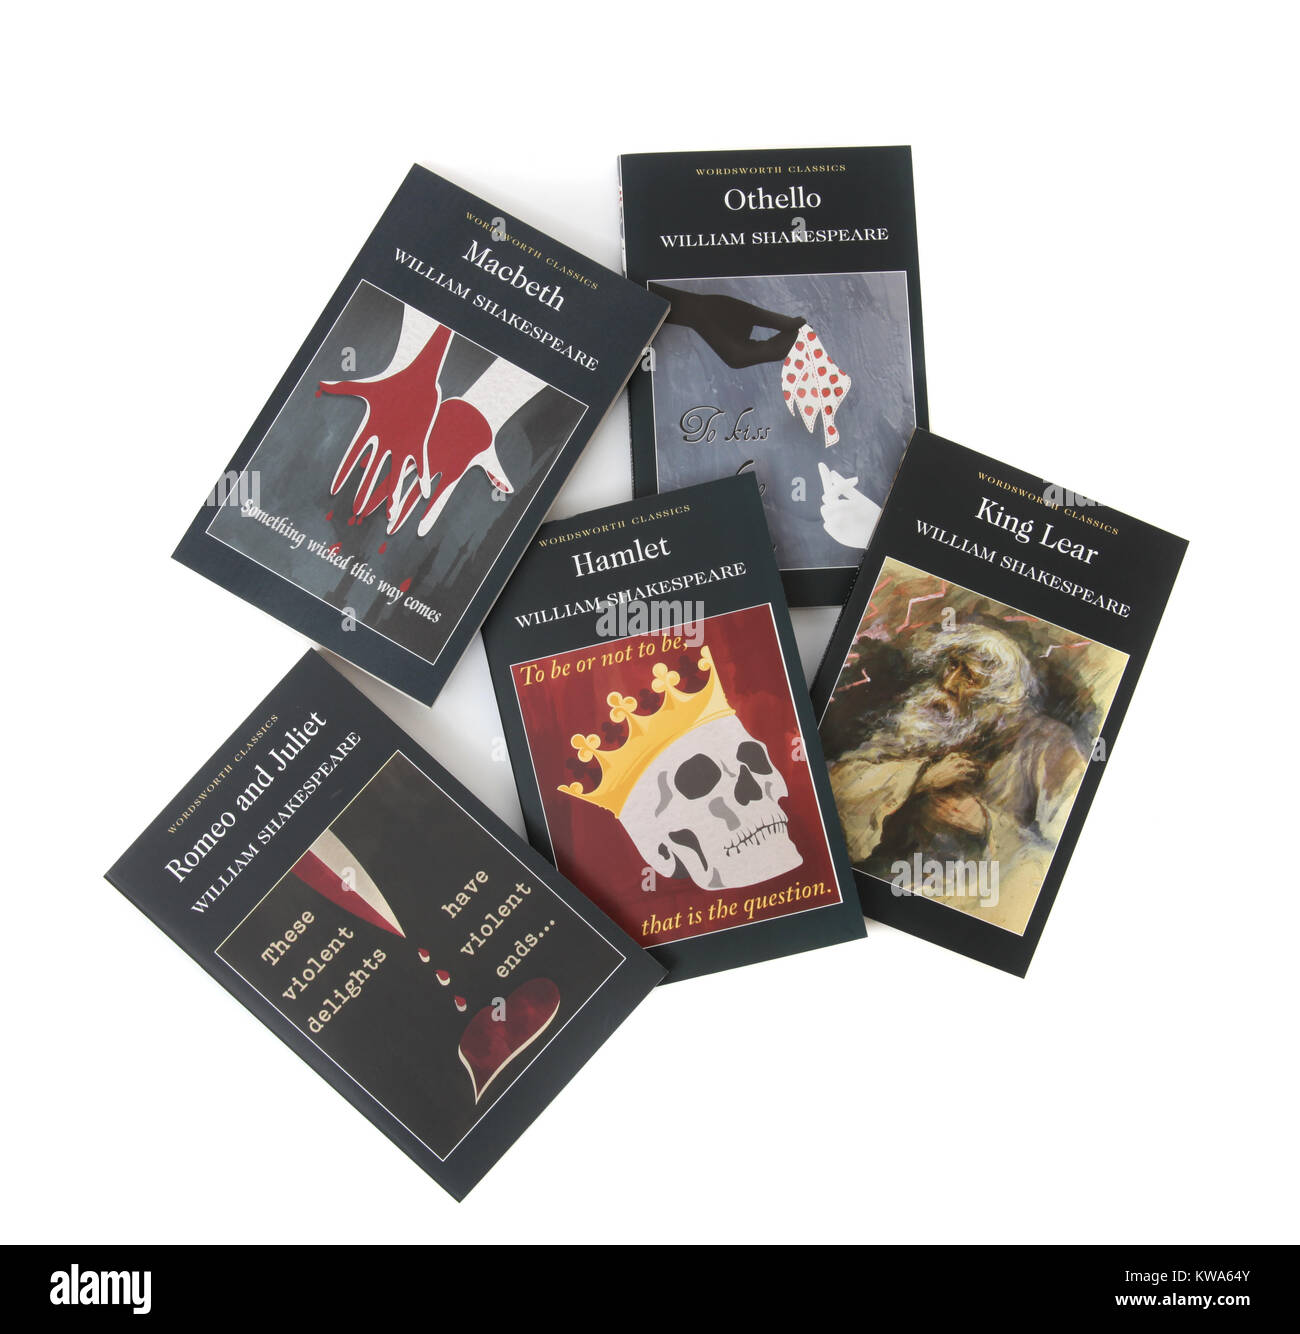 3937658ec A collection of William Shakespeare books including Hamlet, Othello,  Macbeth, King Lear and